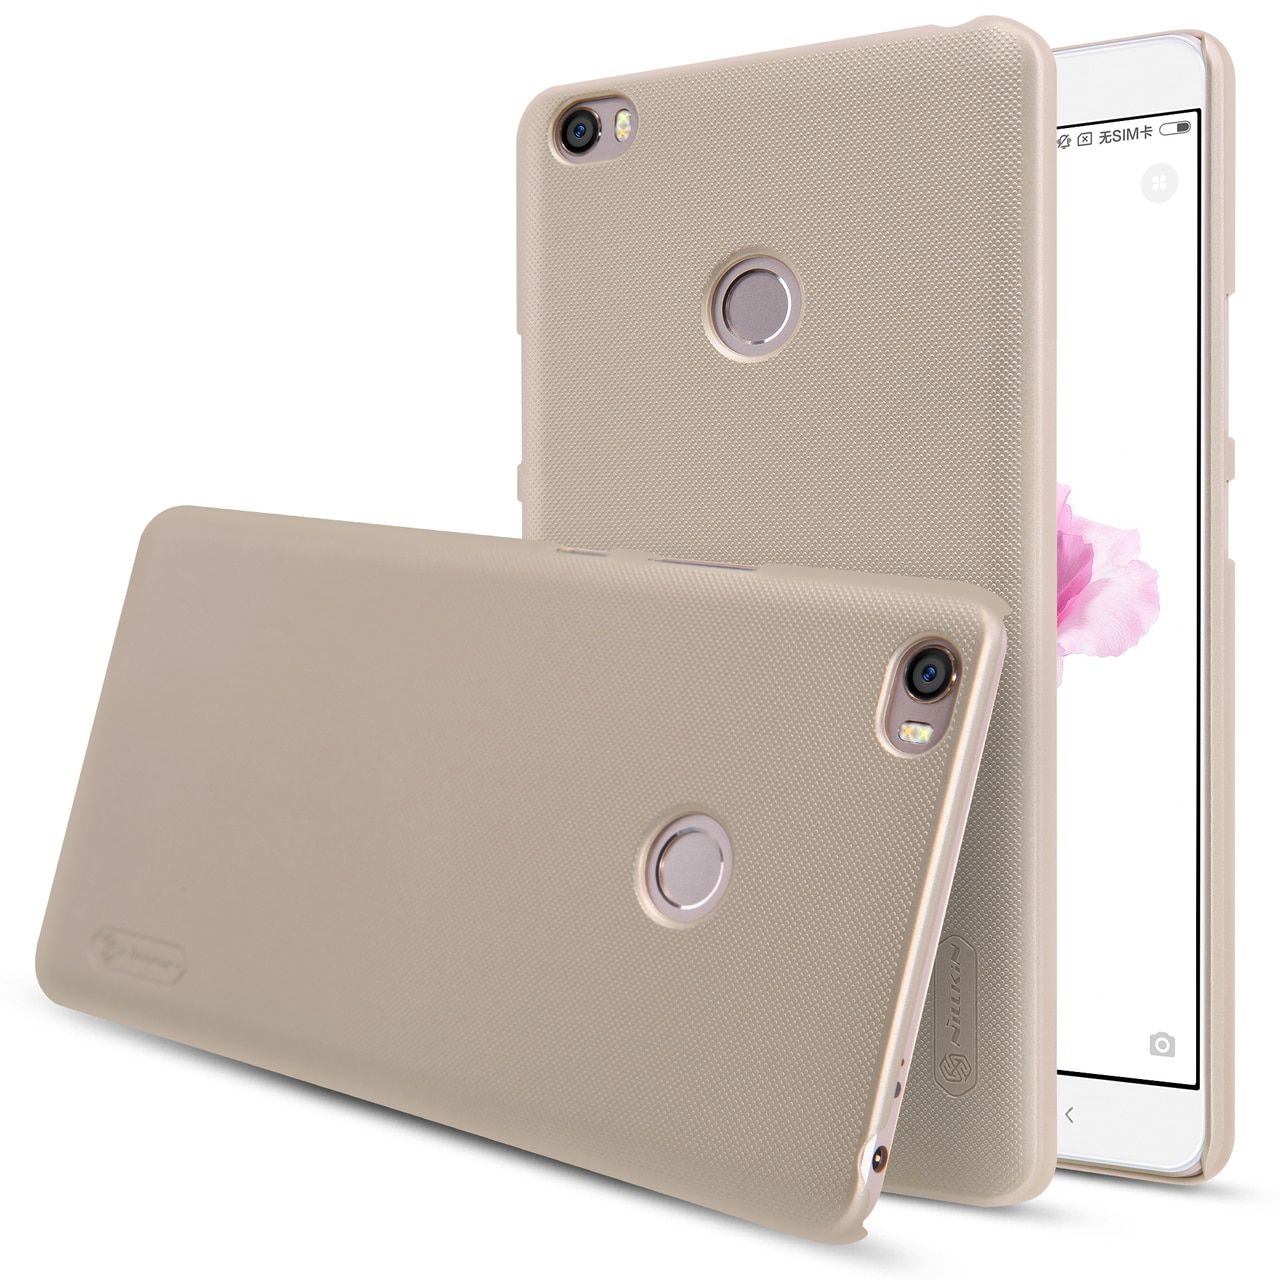 Nillkin Original Frosted Shield Back Cover for Xiaomi Mi MAX